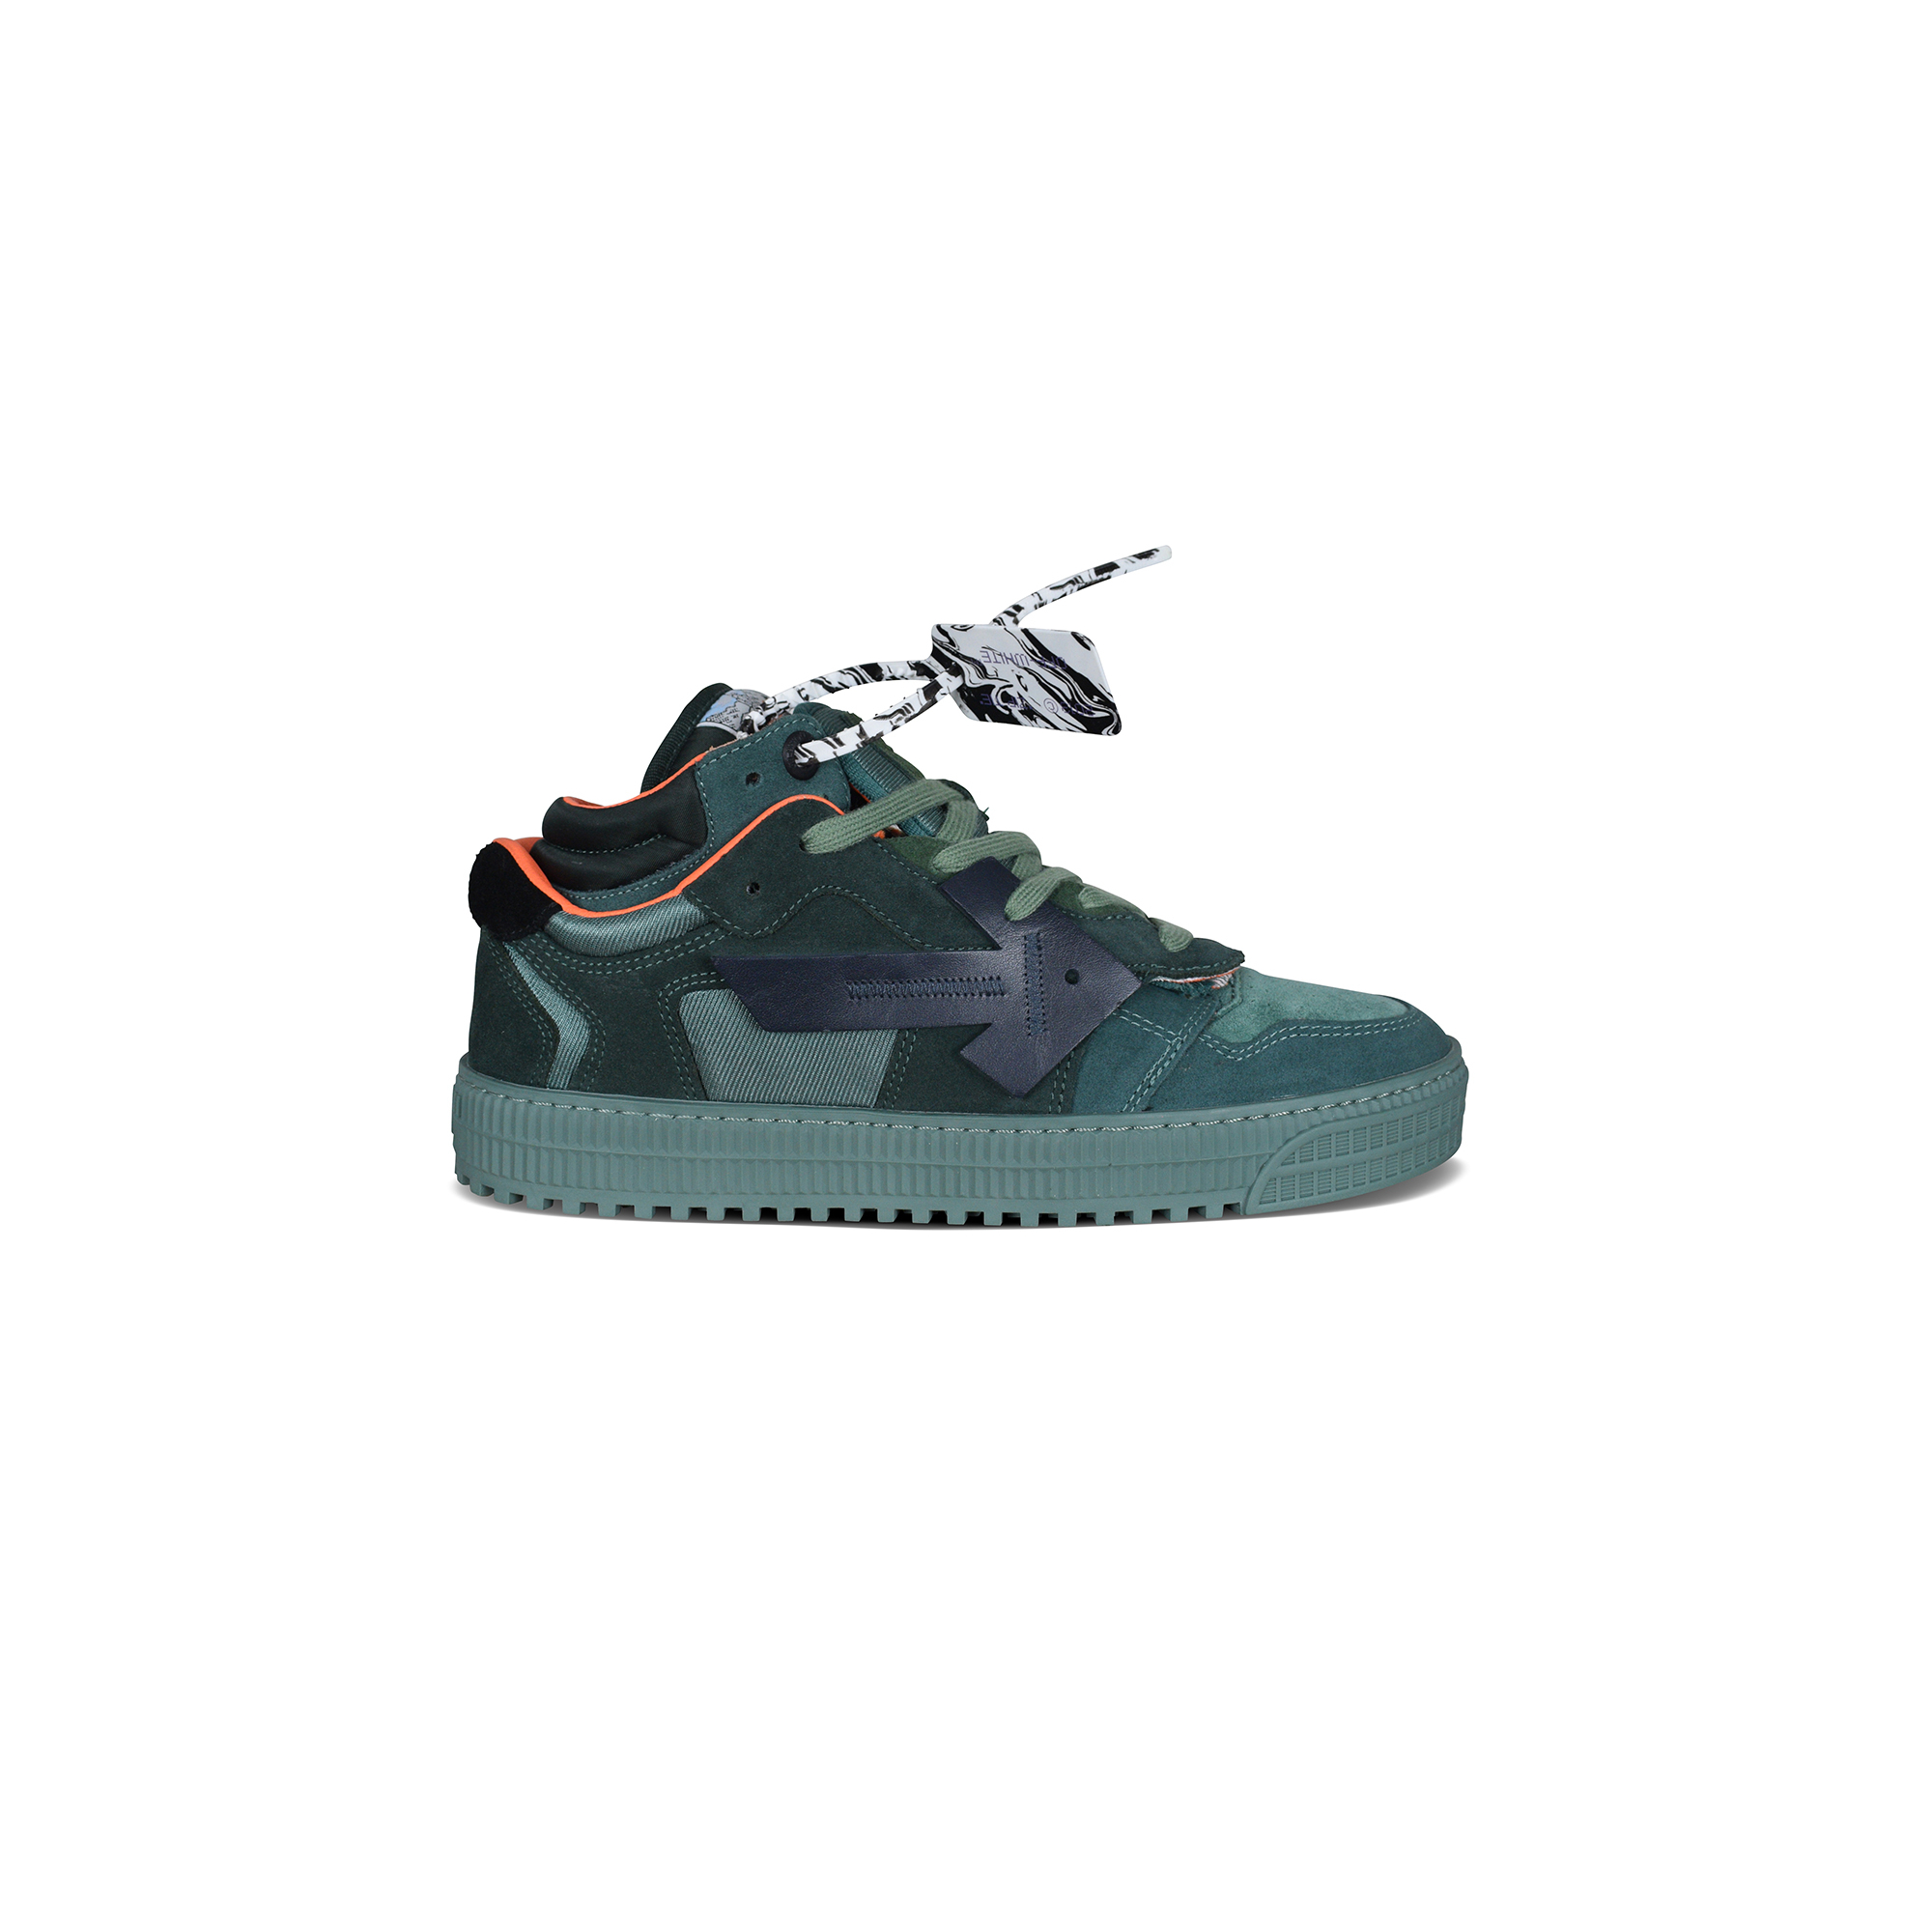 Off Court sneakers in green suede.